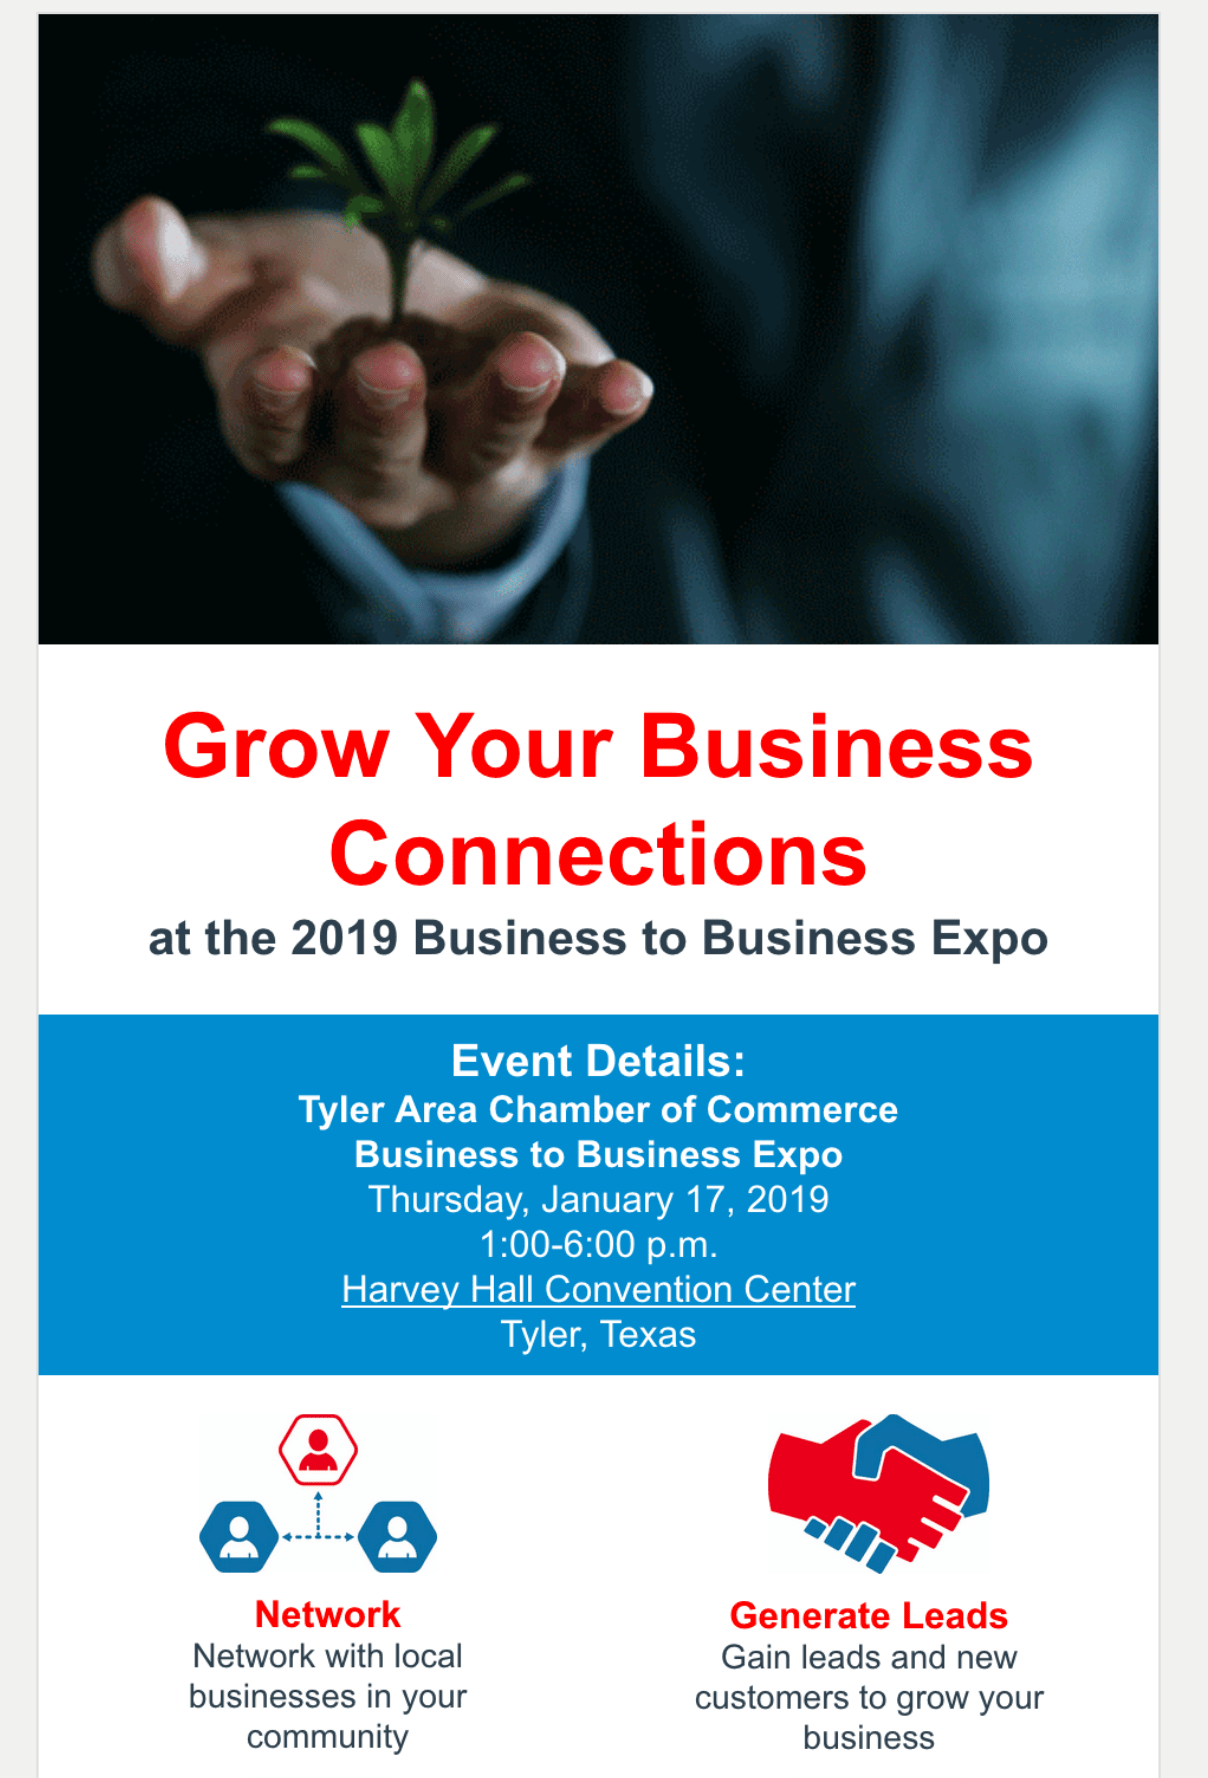 tyler area chamber of commerce example email